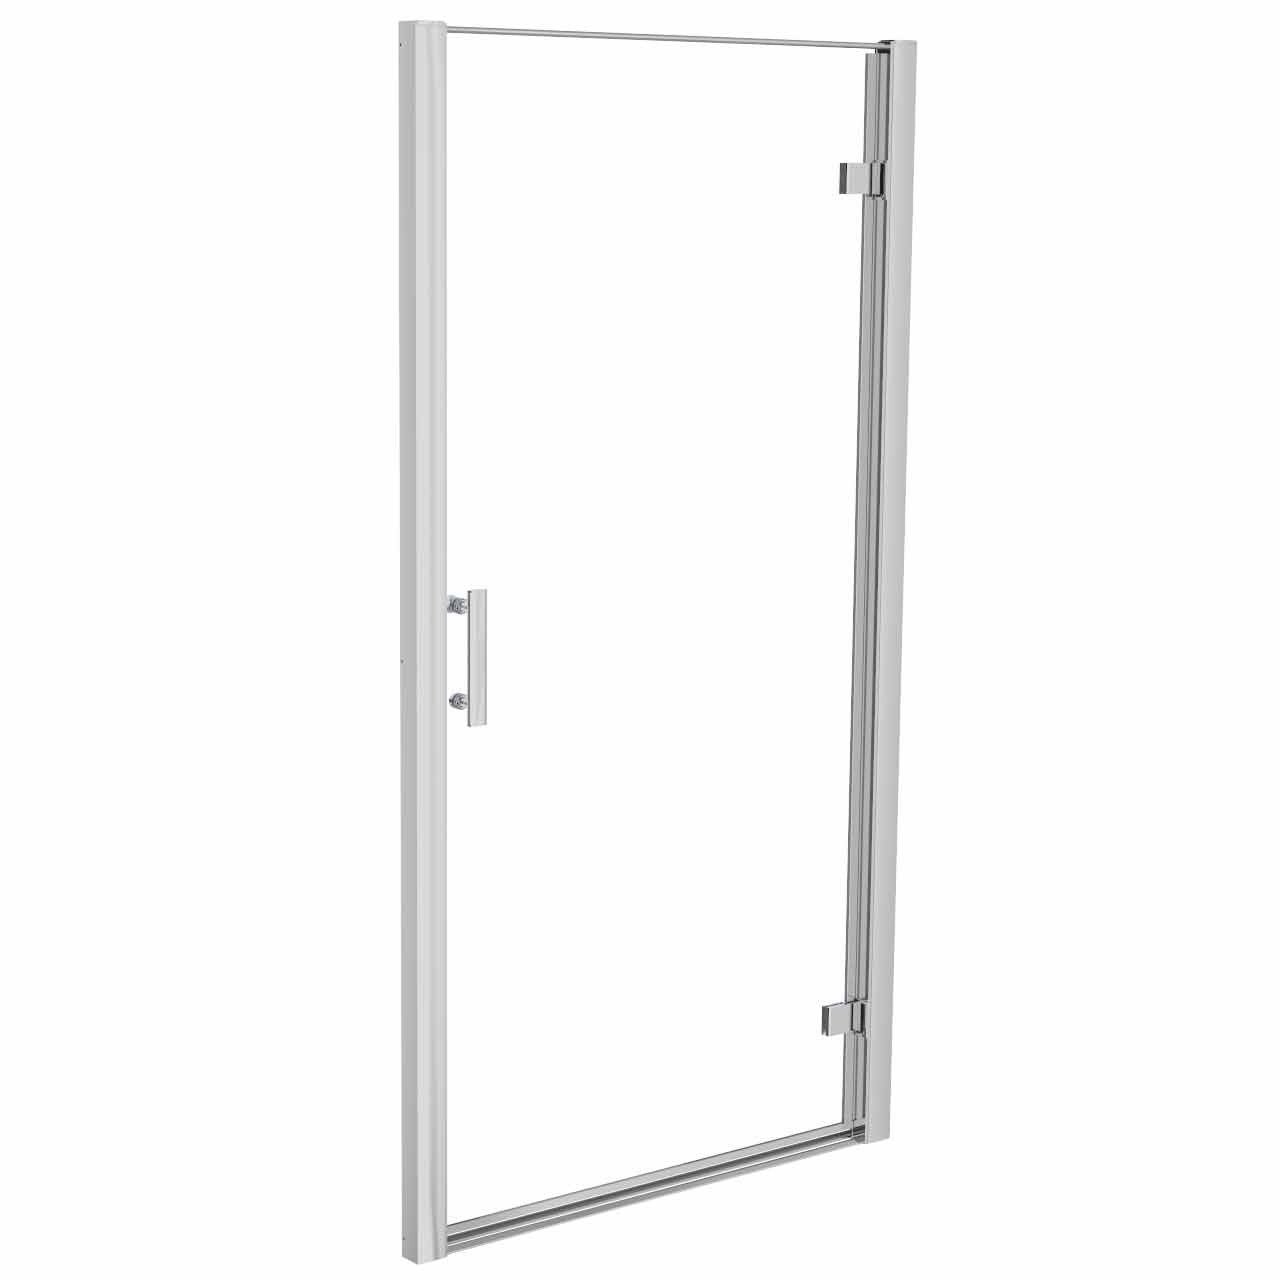 Series 6 1000mm x 800mm Hinged Door Shower Enclosure